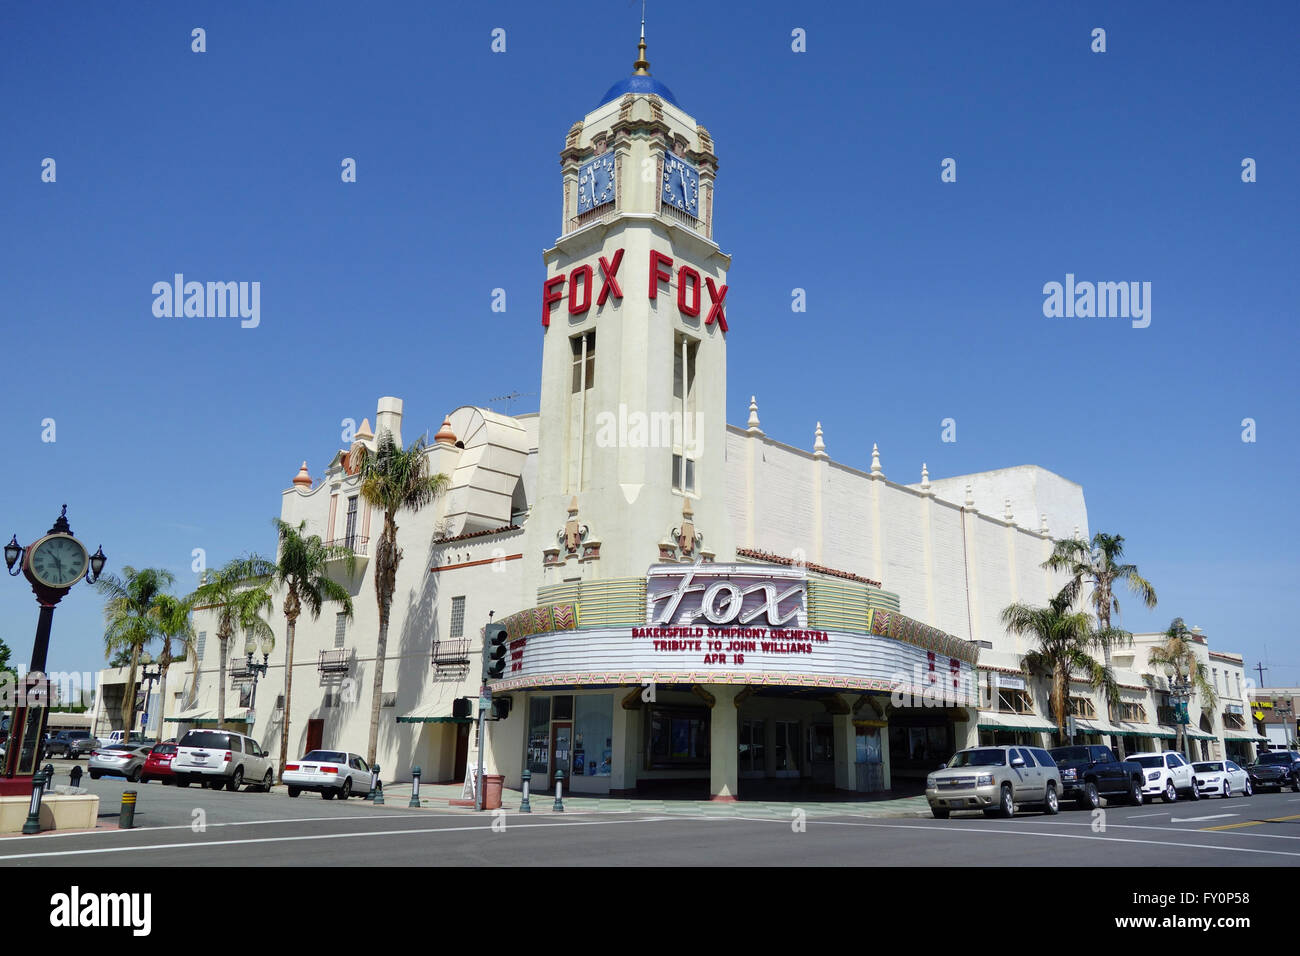 historic Fox movie theater on street in downtown Bakersfield Southern California United States of America Stock Photo